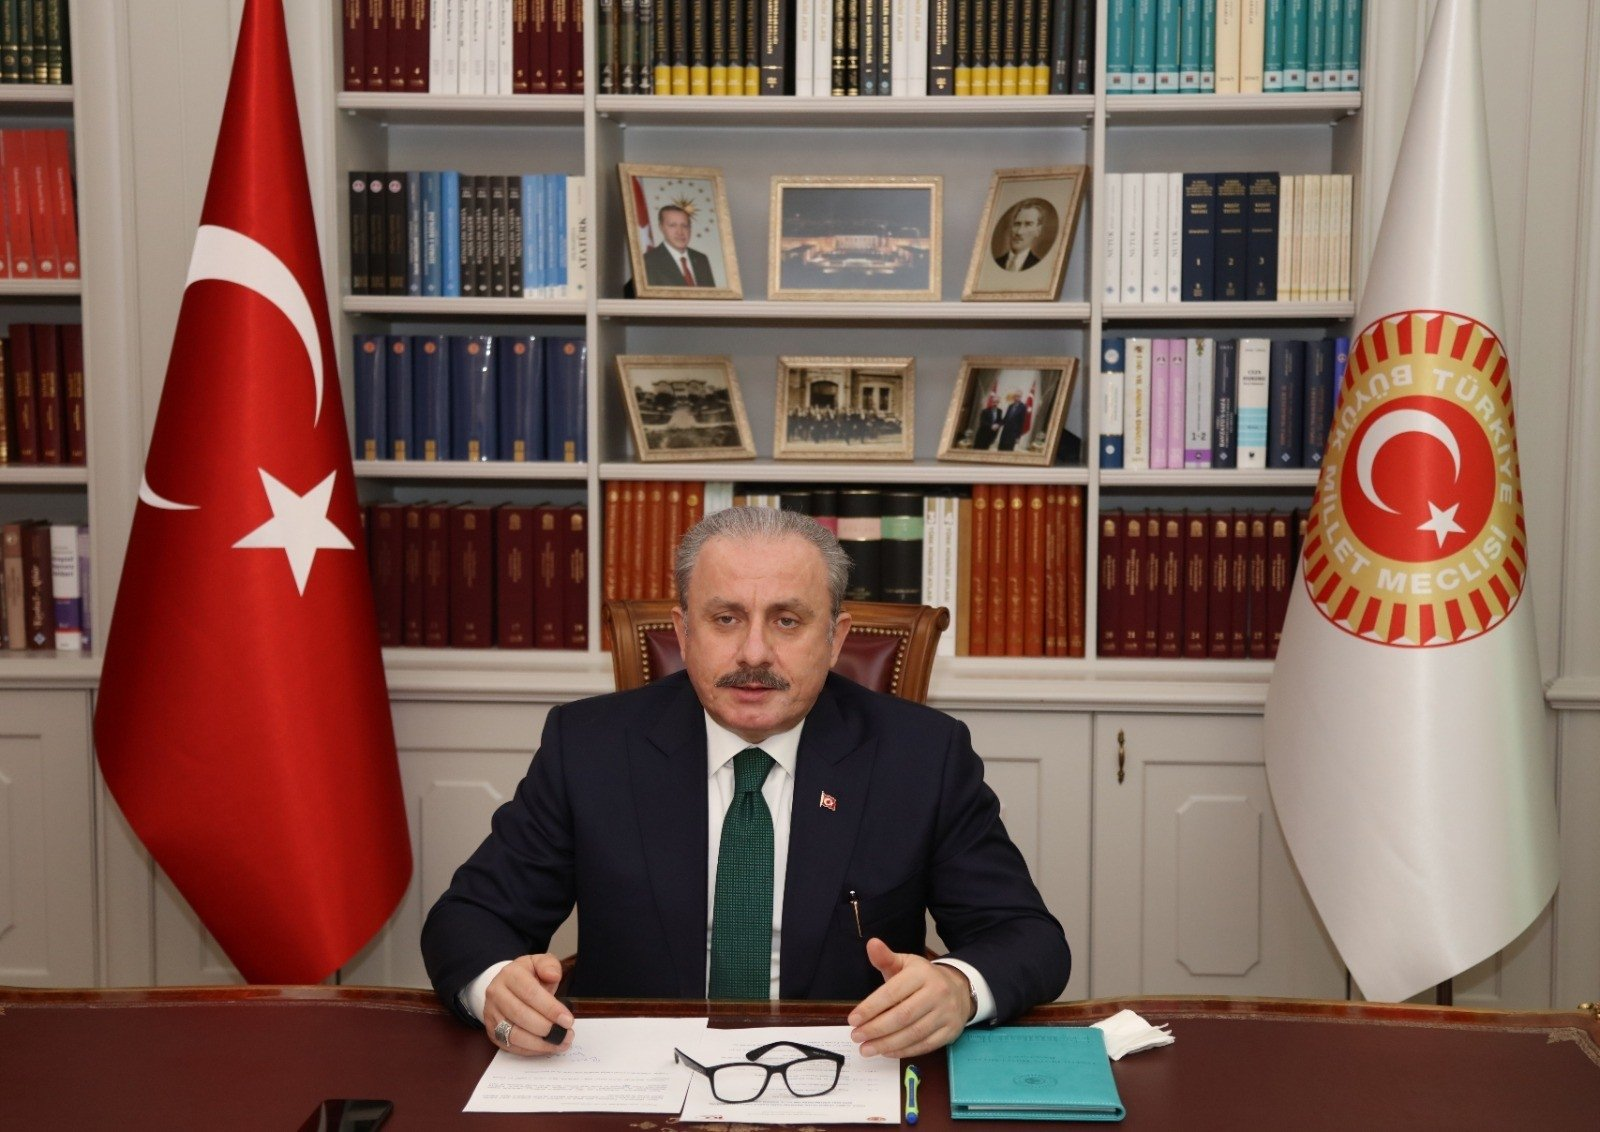 Turkish Parliamentary Speaker Mustafa Şentop speaks at the second-semester opening ceremony of Ahmet Yesevi University via teleconference in the capital Ankara on Jan. 26, 2021. (IHA Photo)